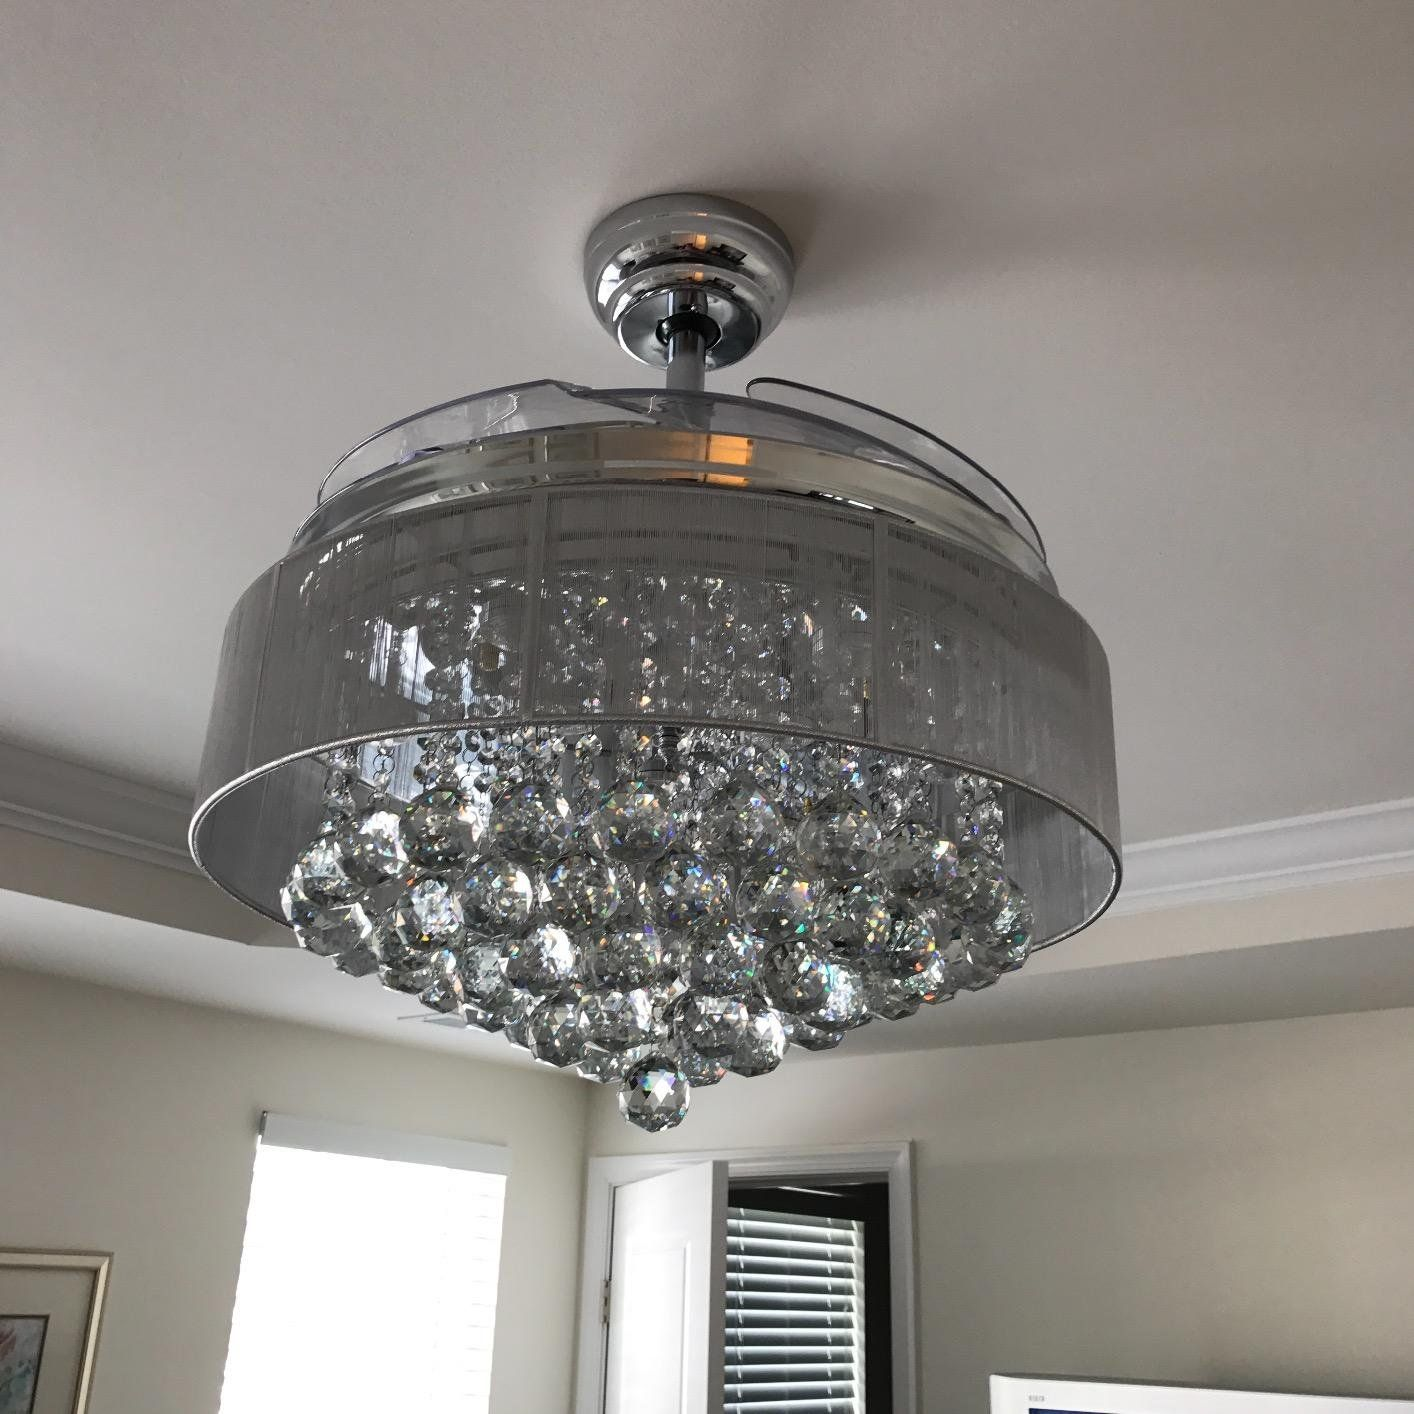 fans decorating and fan plus leafs glass retractable also design window shaped light interesting ceiling interior designs cool for white lamps with palm modern ideas